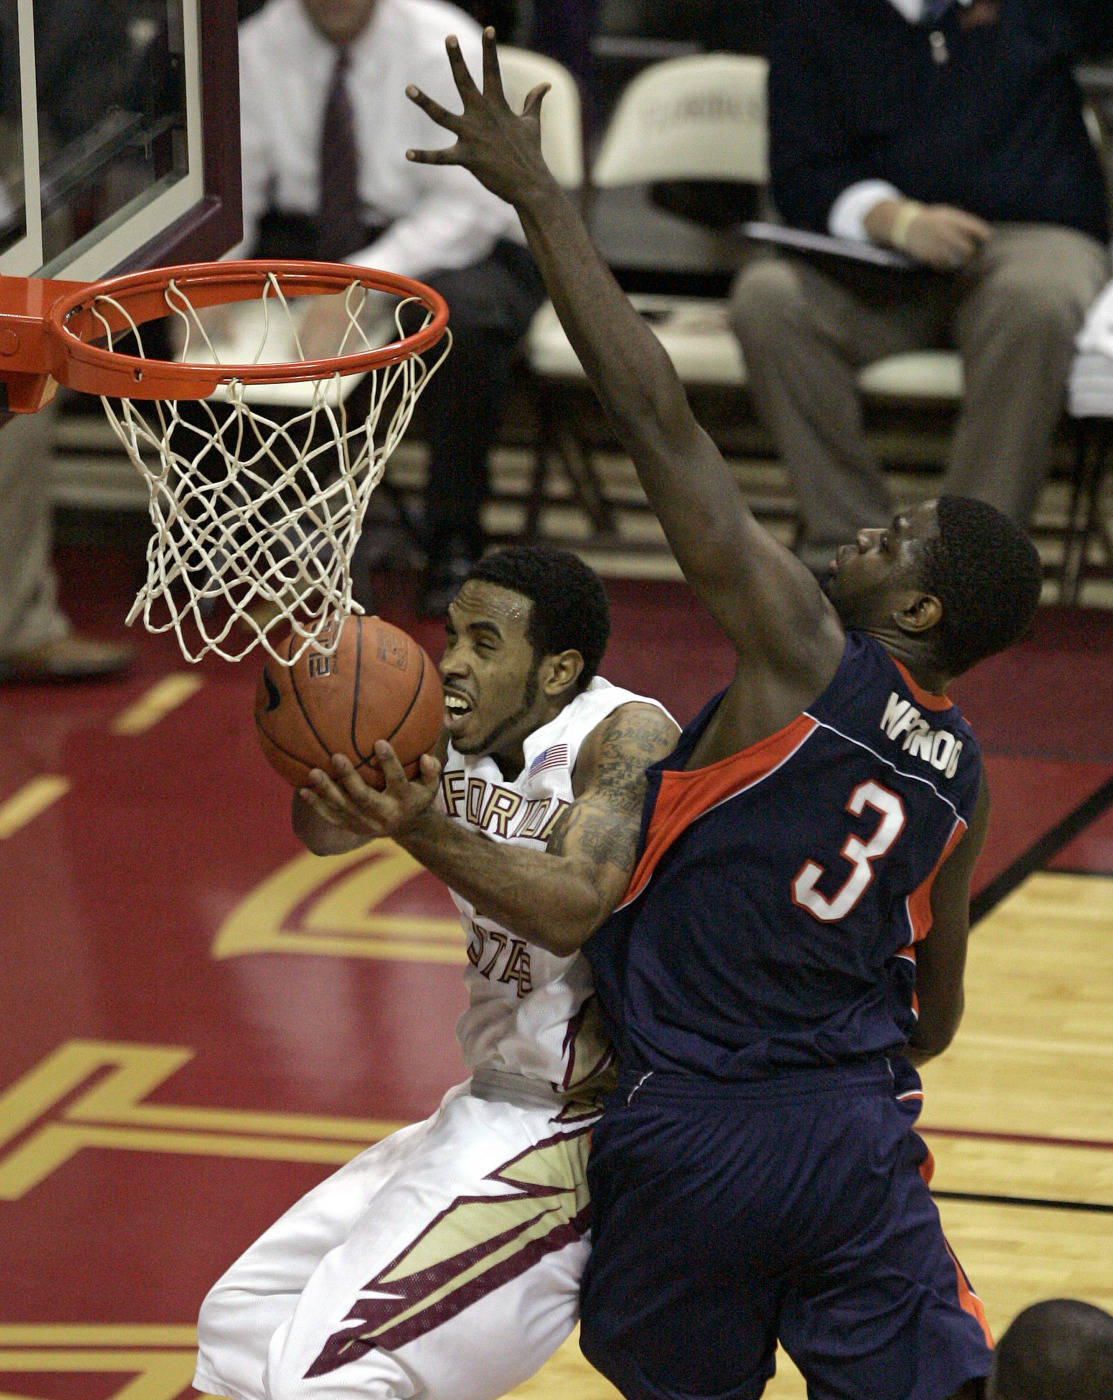 Florida State's Derwin Kitchen tries to drive around the defense of Tennessee-Martin's Dominique Mpondo during the first half of an NCAA college basketball game Tuesday, Dec. 22, 2009, in Tallahassee, Fla.